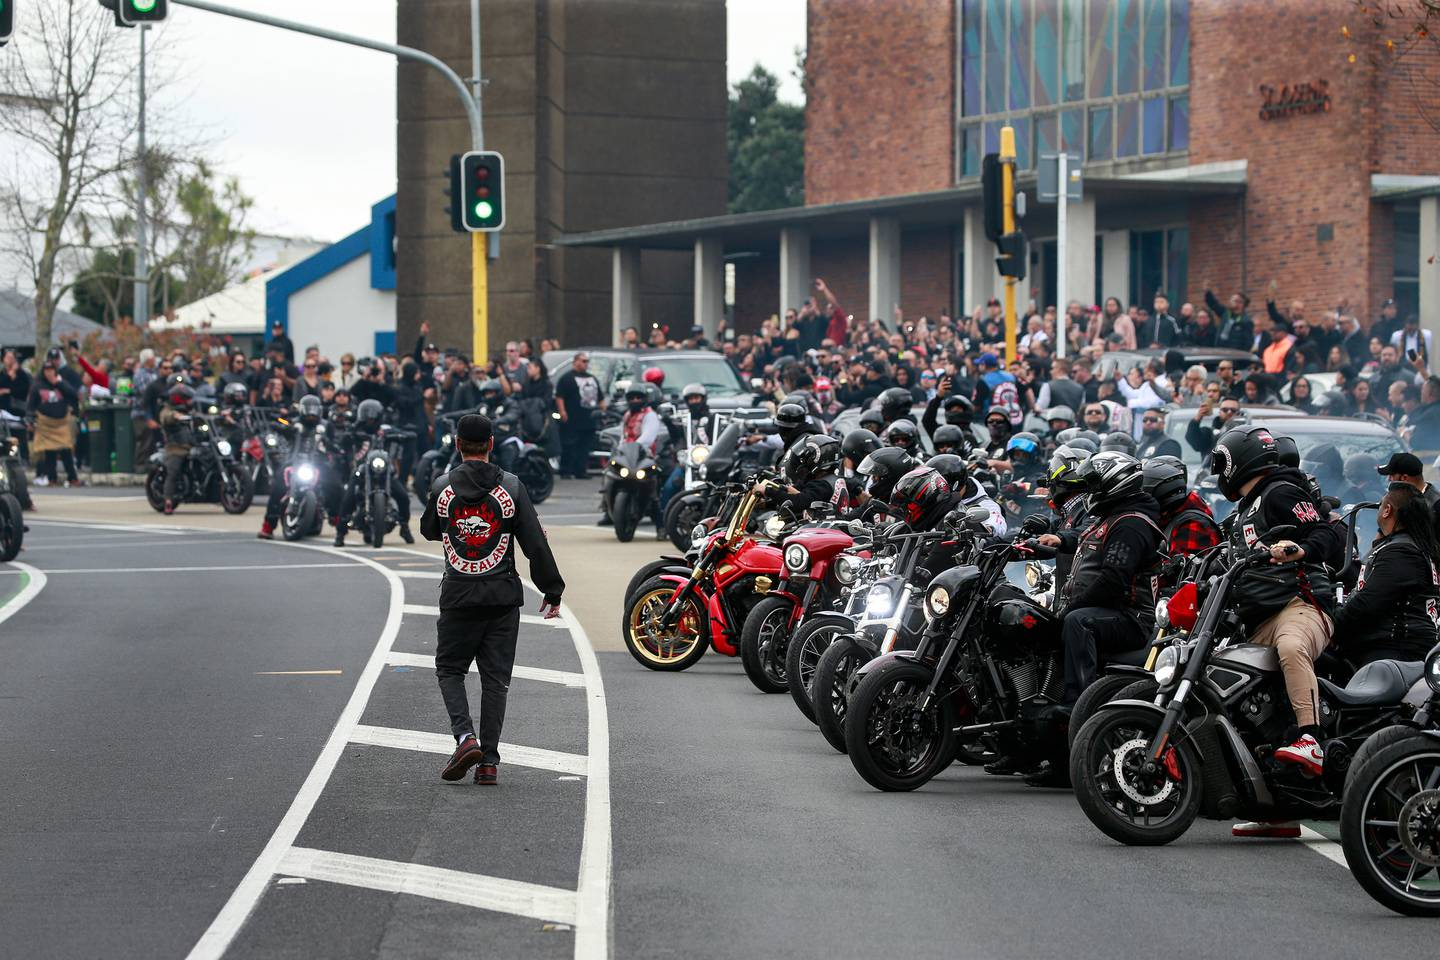 More than 300 mourners attended the funeral of Taranaki Fuimaono, a Head Hunters gang member who died shortly after being taken into police custody in June. Photo / Alex Burton